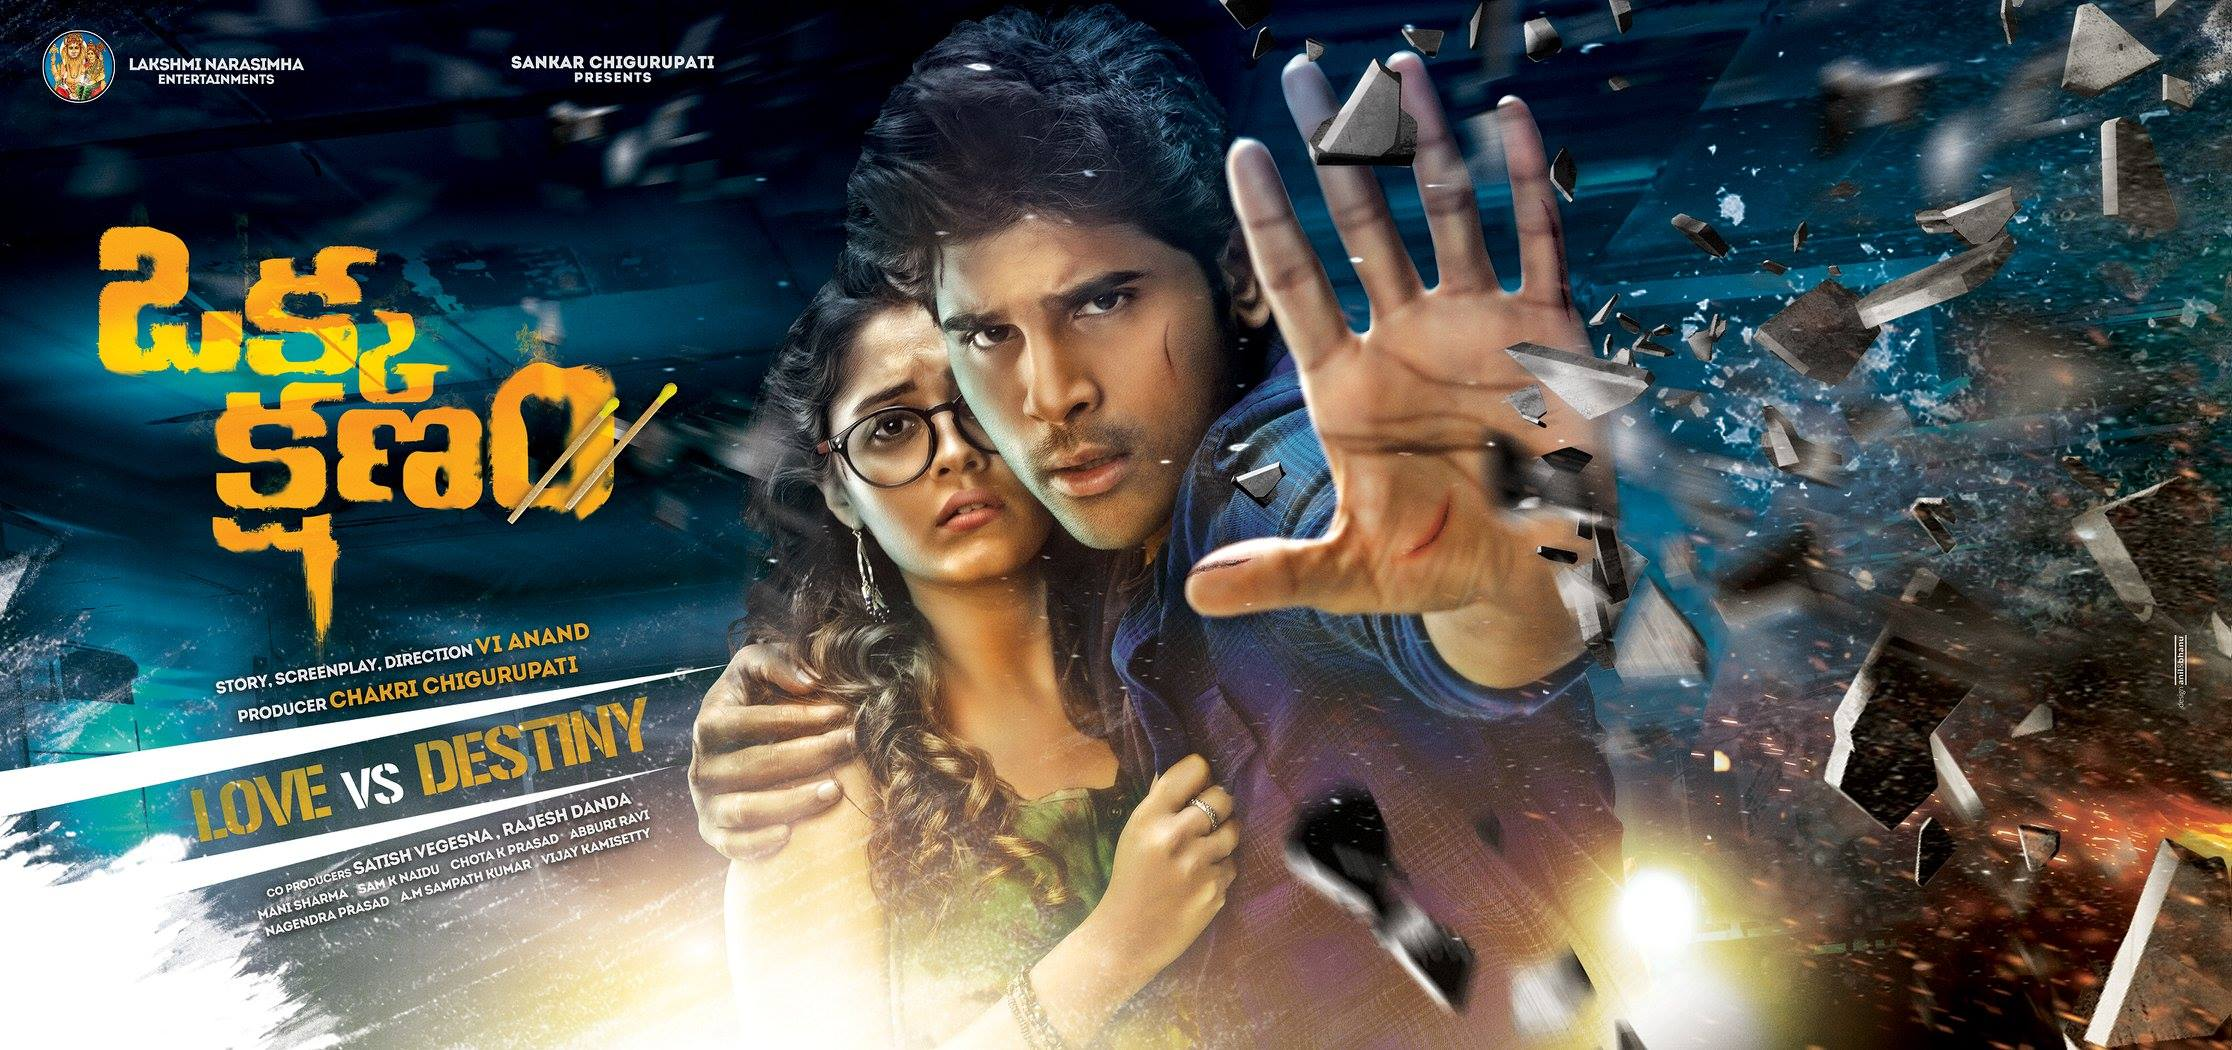 okka kshanam movie posters